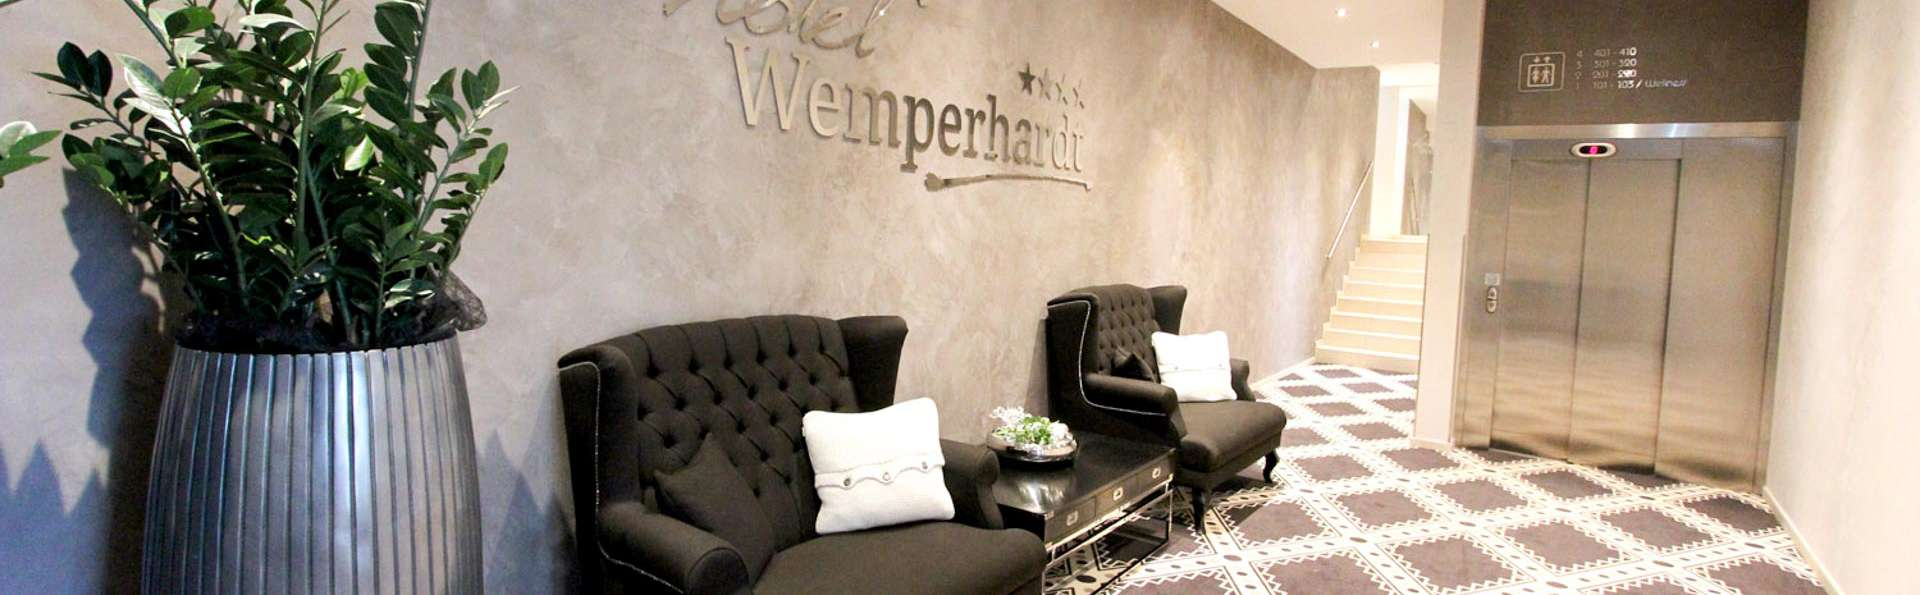 Hotel Wemperhardt - EDIT_LOUNGE_01.jpg